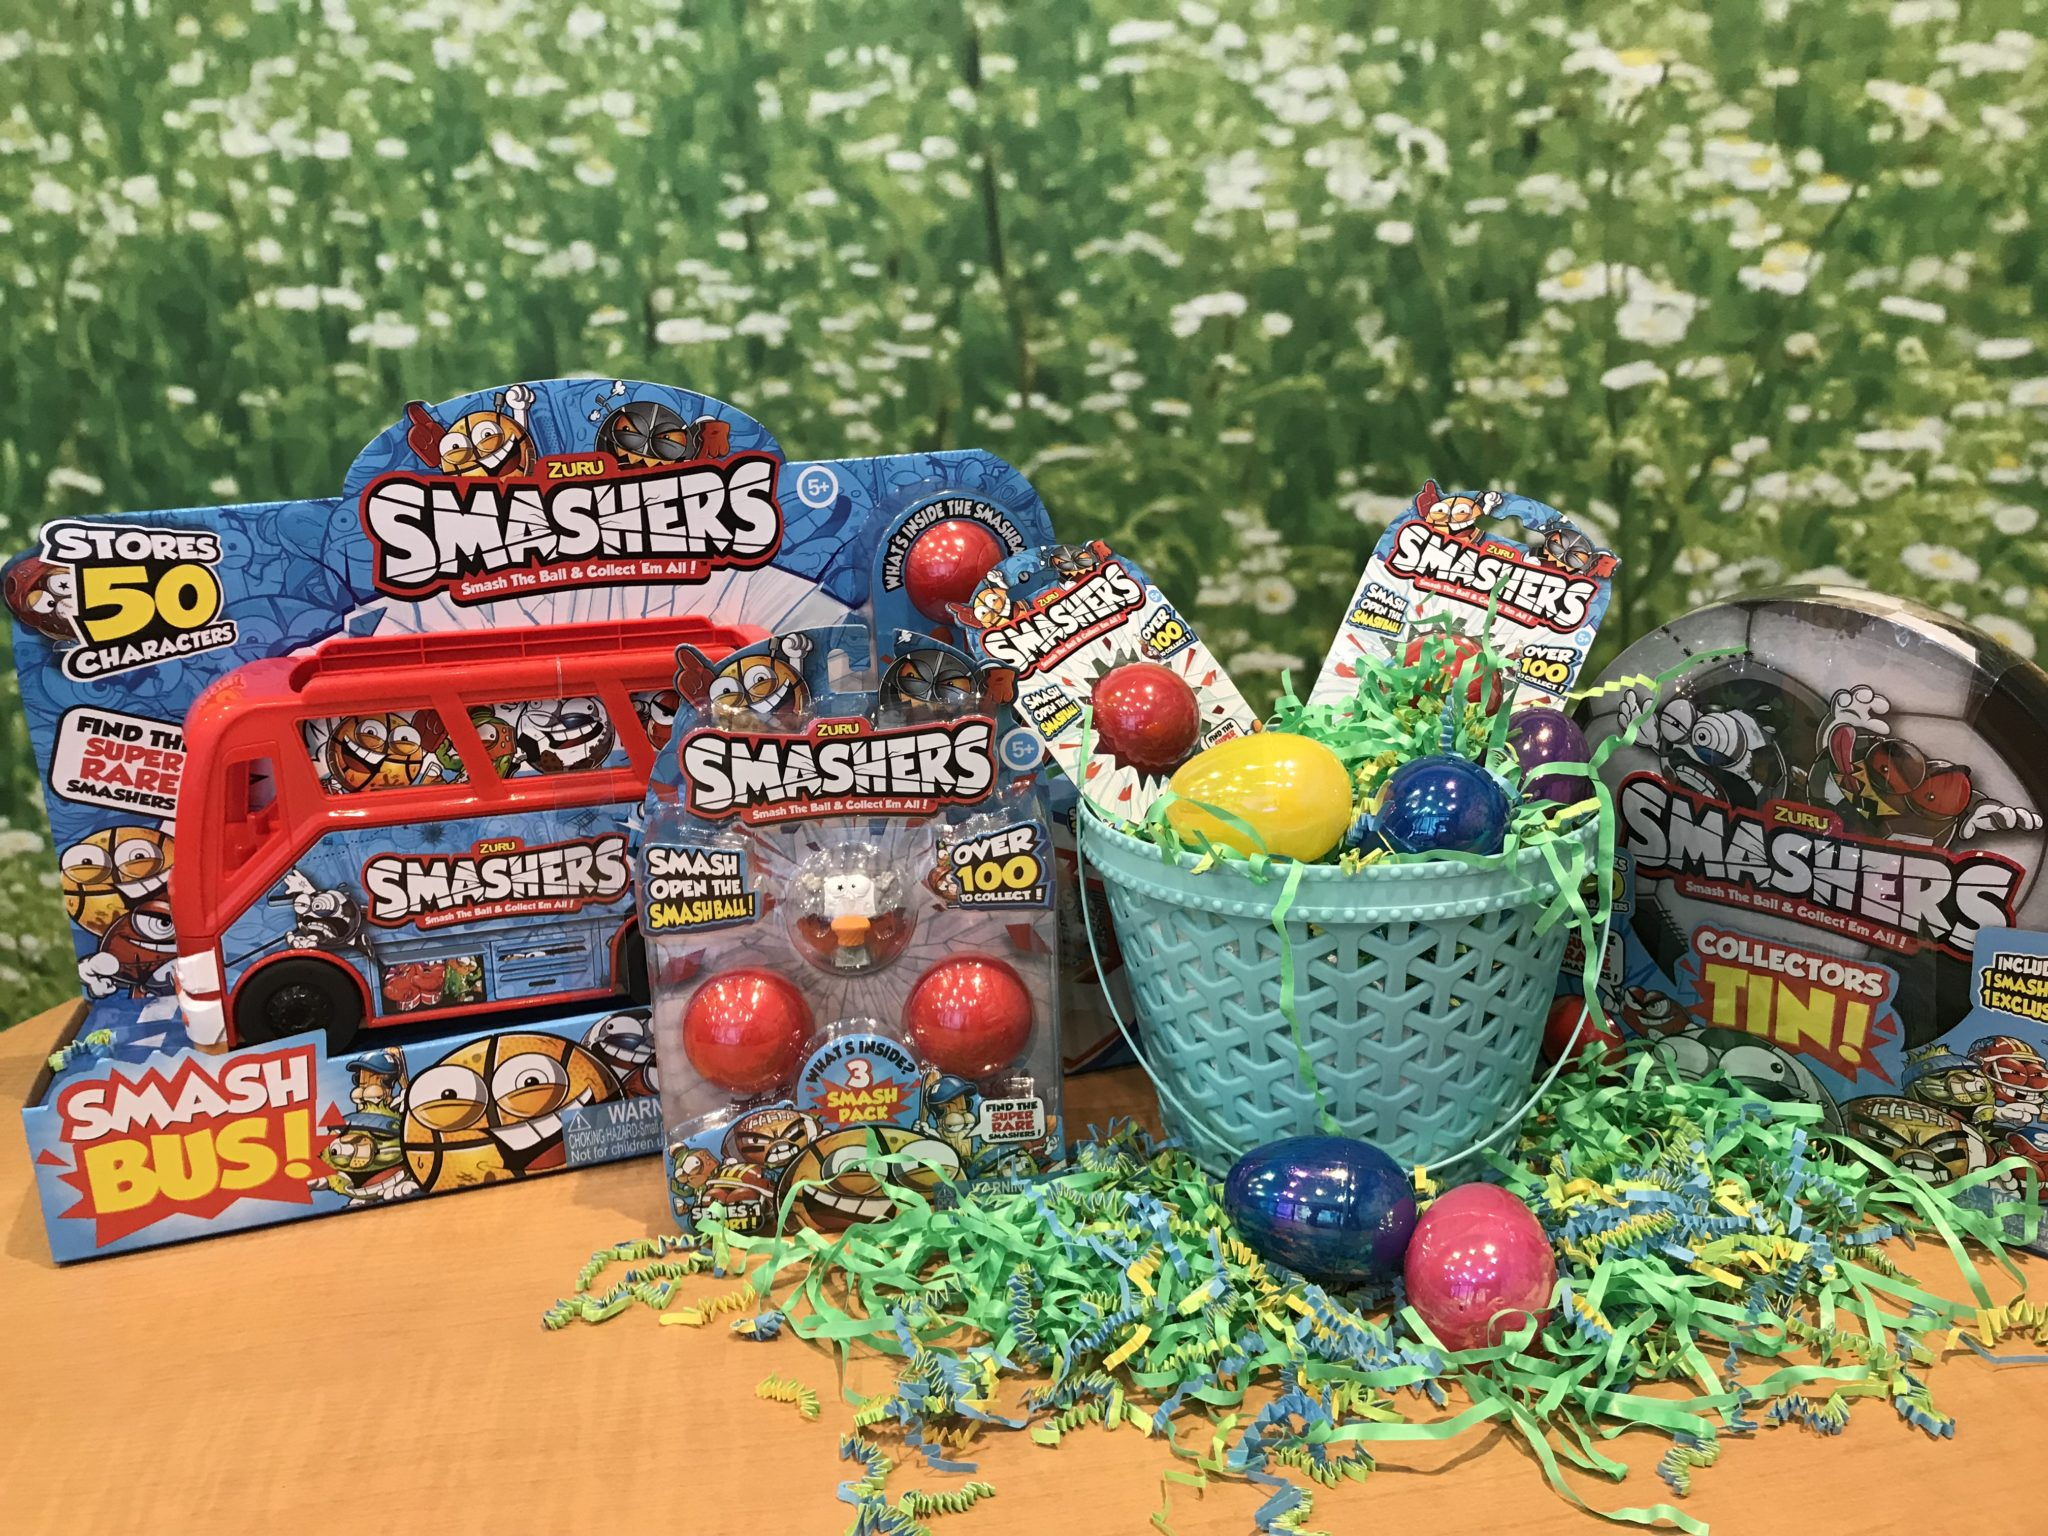 Stylish Kids Smash Open Smashball To Reveal A Character Hidden I Meanwhat Kid Like To Smash Smashers Are Lots Easter Baskets Spring Gifts Kids Will Love baby Easter Gifts For Kids